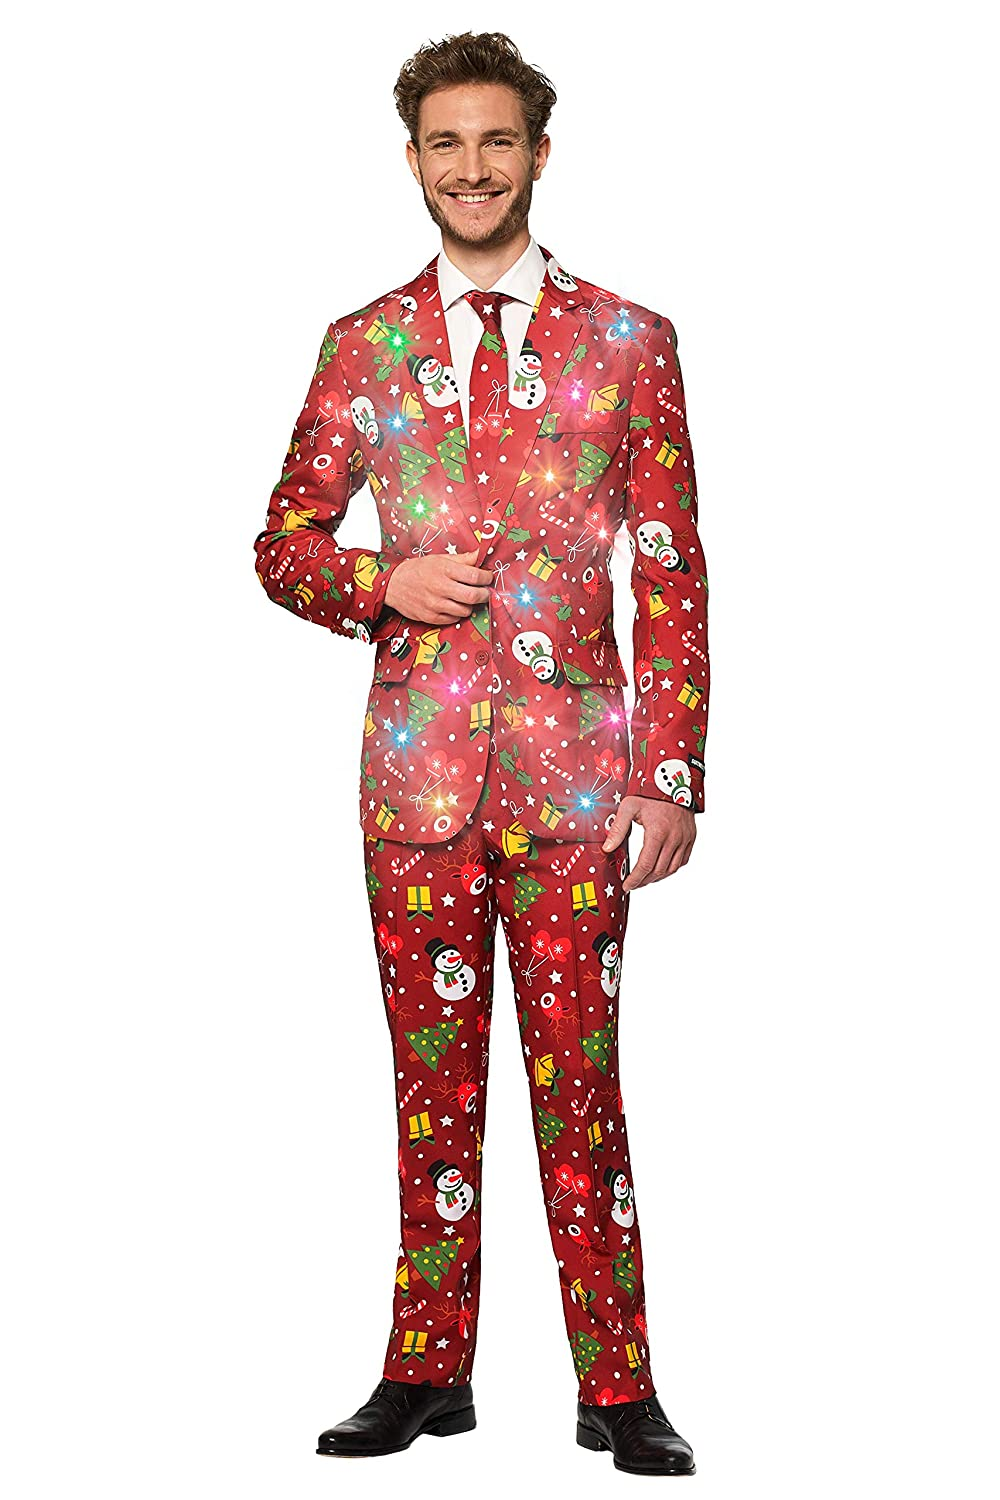 Suitmeister Light-Up Christmas Suits for Men in Different Prints Ugly Xmas Sweater Costumes Include Jacket Pants /& Tie